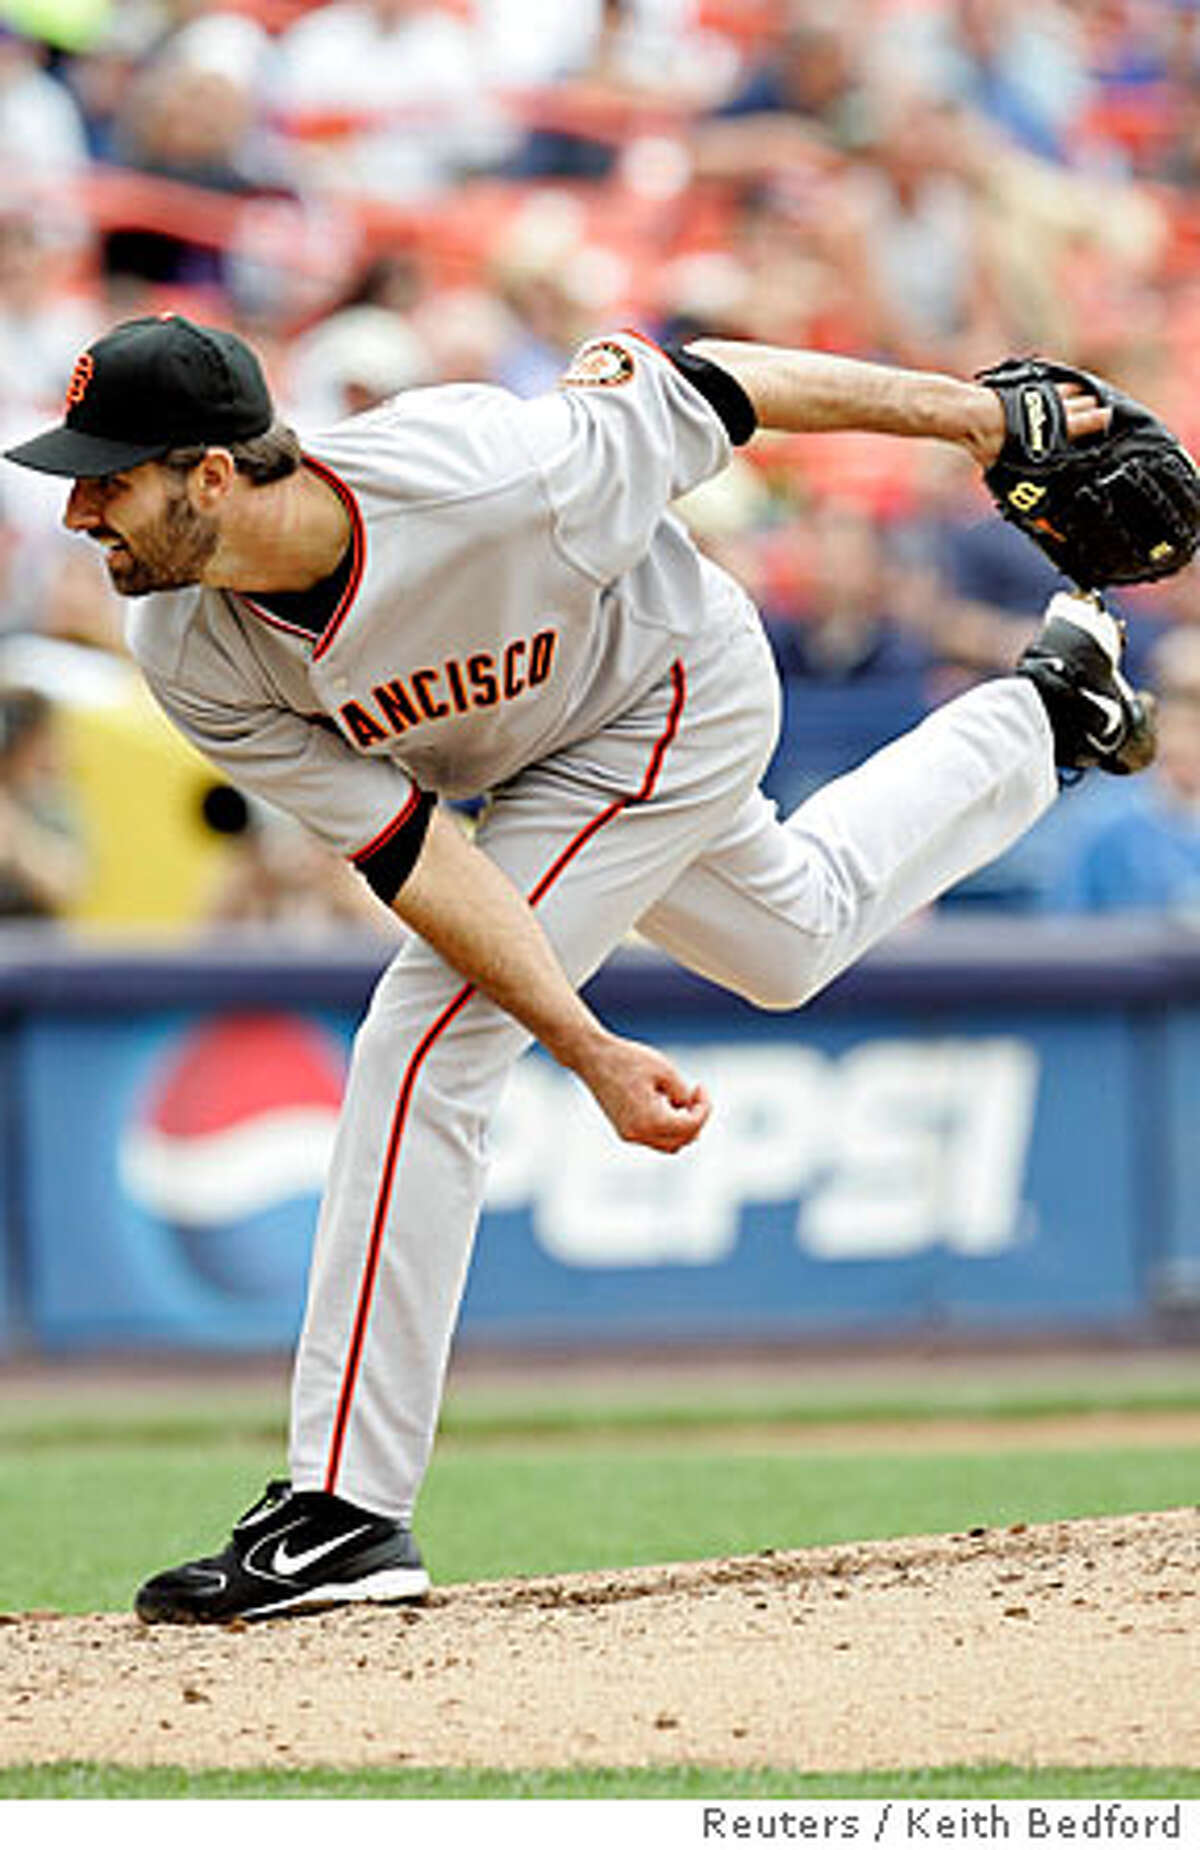 San Francisco Giants' Morris delivers pitch in first inning of Giants National League baseball game against New York Mets in New York